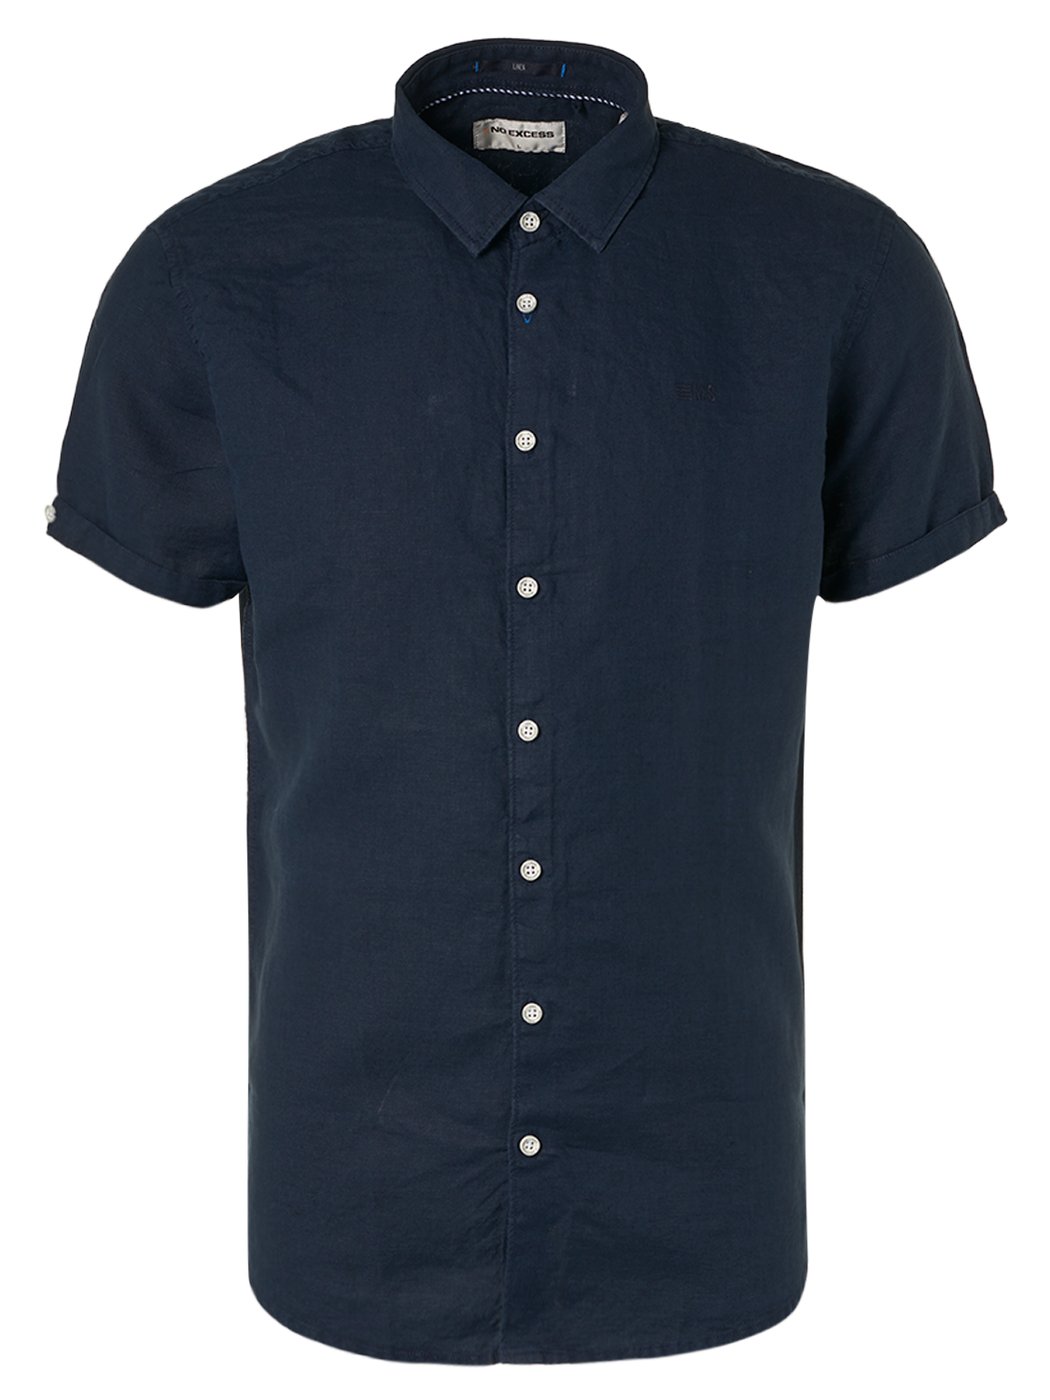 Mens S/S Linen Shirt - Night | Shop No Excess at Wallace and Gibbs